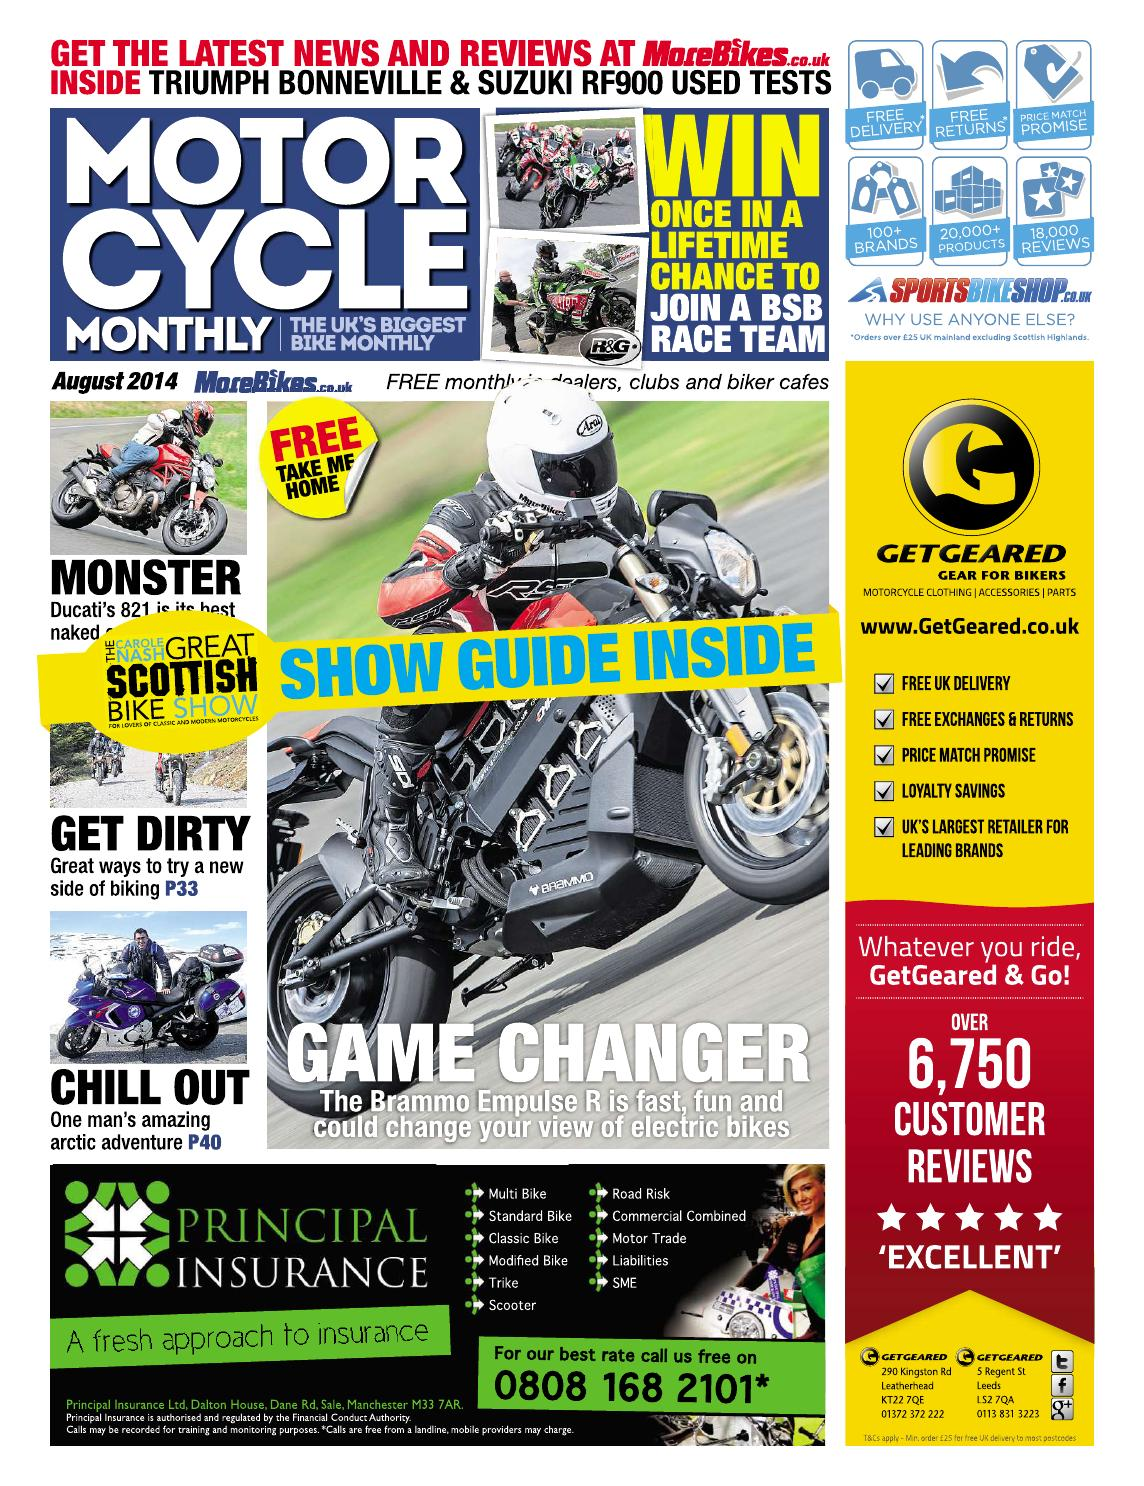 Motor Cycle Monthly August 2014 Full Edition By Mortons Media All New Cbr 150r Victory Black Red Jakarta Group Ltd Issuu